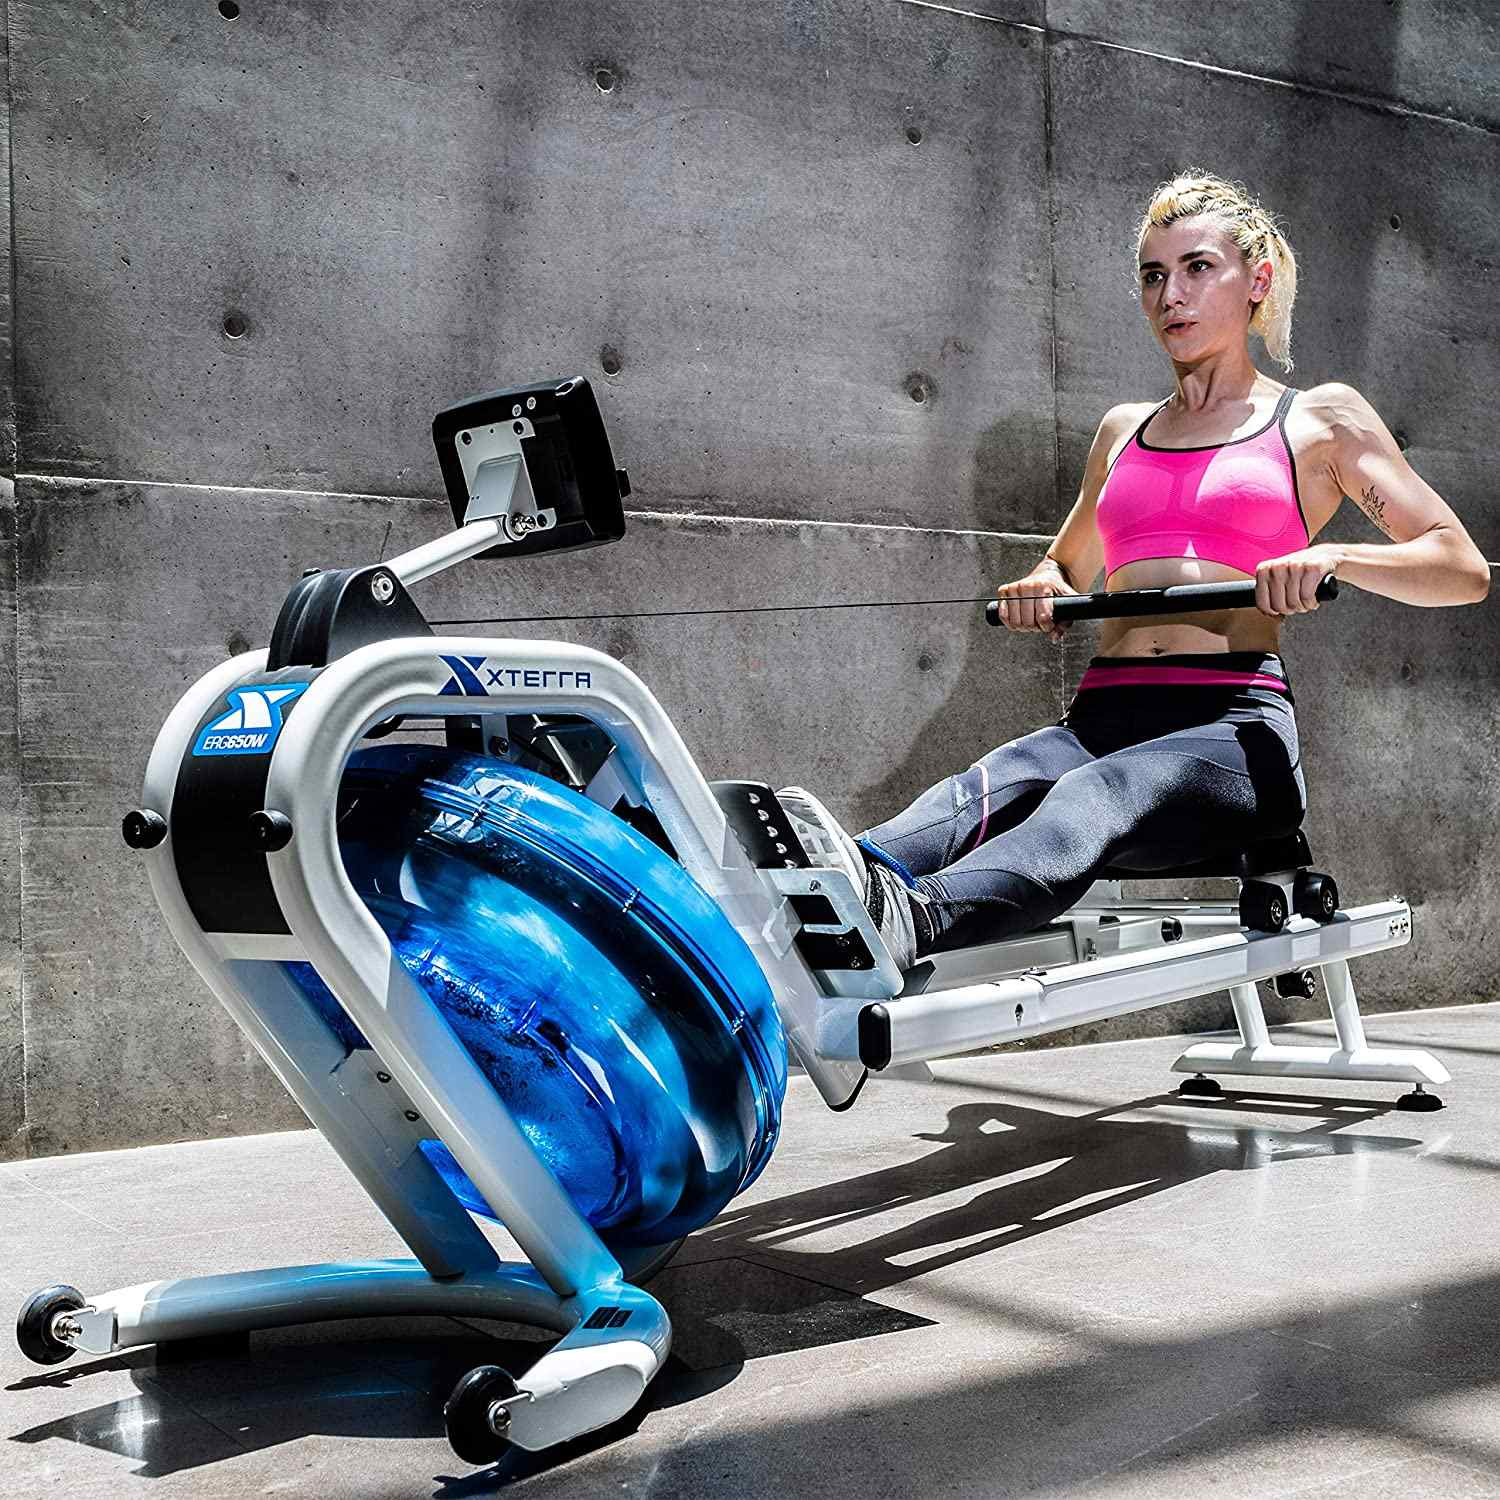 Xterra fitness erg600w water rower reviews